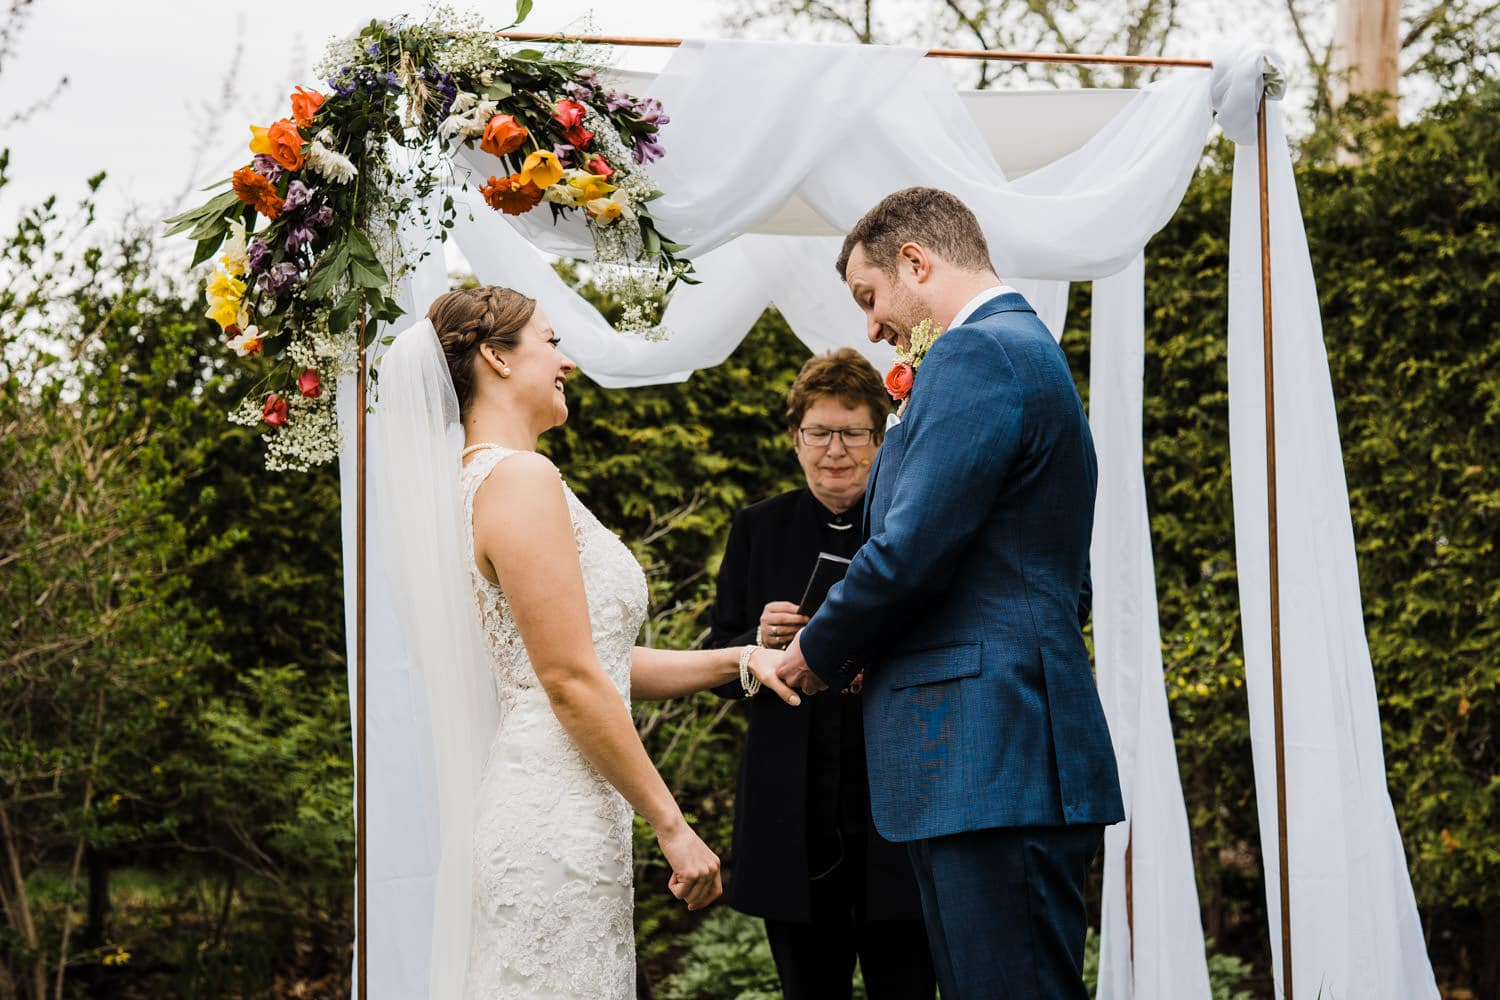 couple laughs as they exchange rings - intimate backyard ceremony